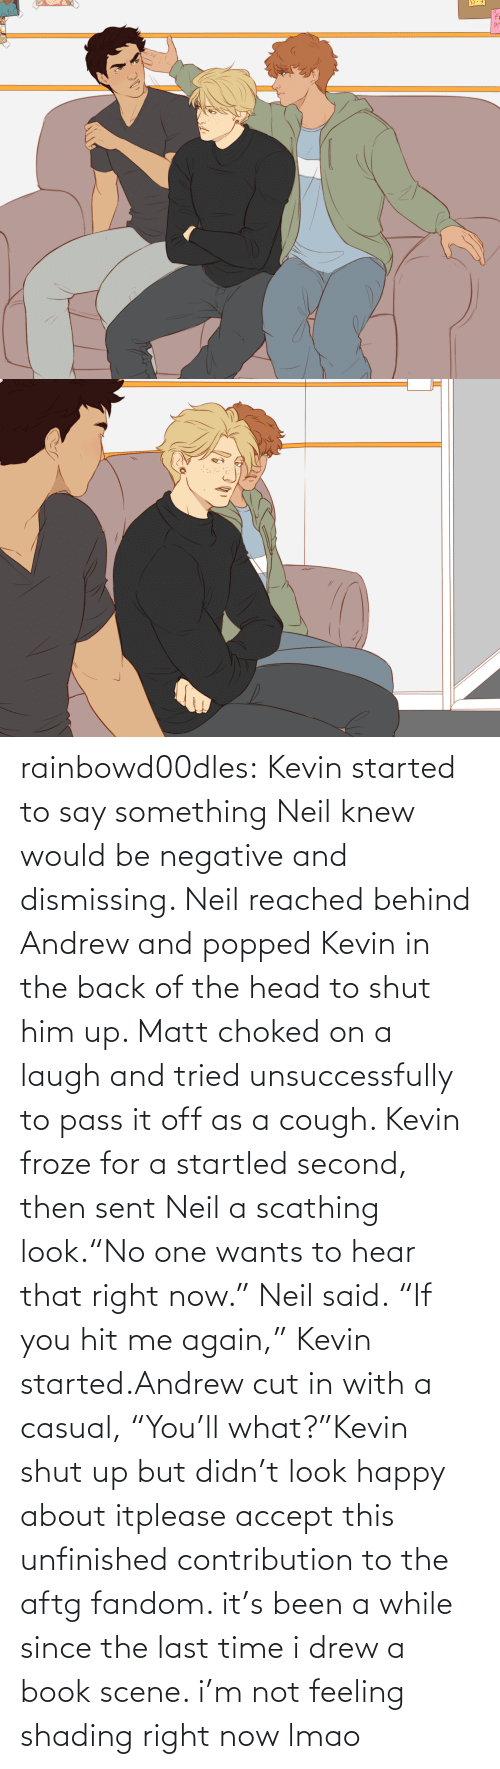 "knew: rainbowd00dles:  Kevin started to say something Neil knew would be negative and dismissing. Neil reached behind Andrew and popped Kevin in the back of the head to shut him up. Matt choked on a laugh and tried unsuccessfully to pass it off as a cough. Kevin froze for a startled second, then sent Neil a scathing look.""No one wants to hear that right now."" Neil said. ""If you hit me again,"" Kevin started.Andrew cut in with a casual, ""You'll what?""Kevin shut up but didn't look happy about itplease accept this unfinished contribution to the aftg fandom. it's been a while since the last time i drew a book scene. i'm not feeling shading right now lmao"